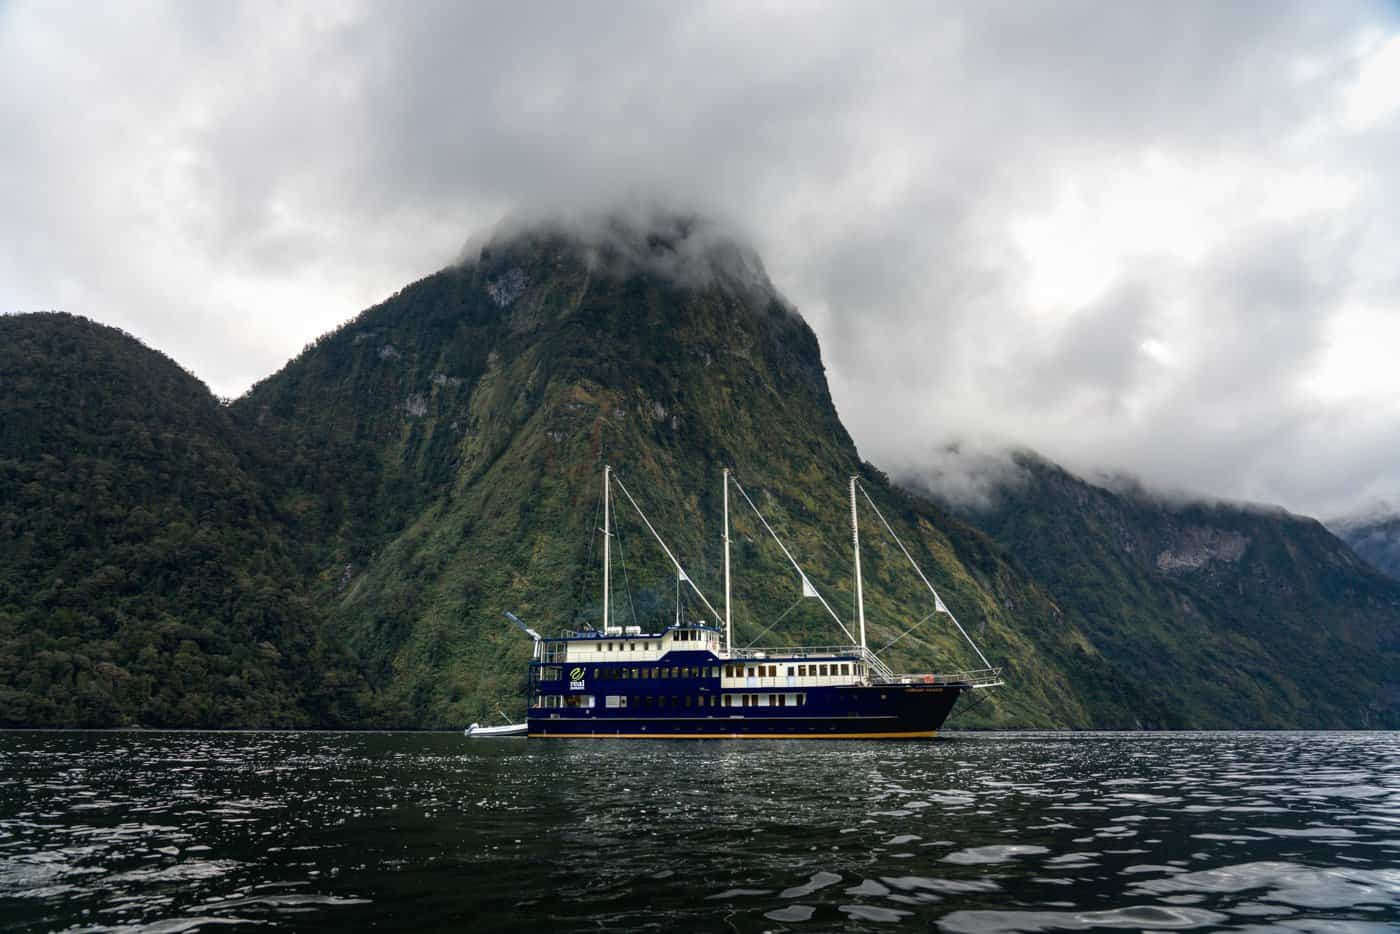 Real Journey's Fjordland Navigator is a stunning and well-appointed cruise ship for exploring the Doubtful Sound.